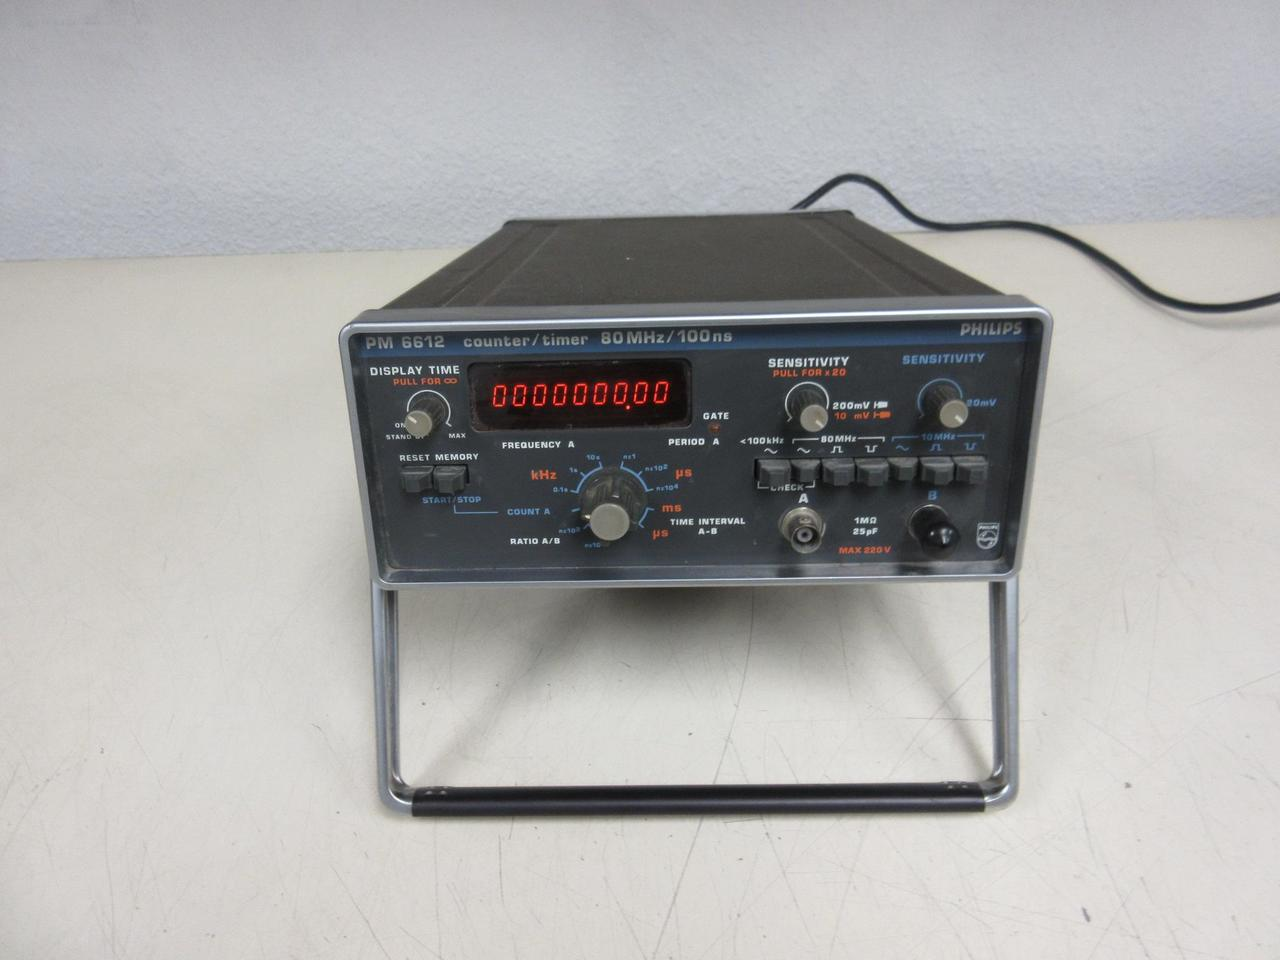 Philips Pm6612 Counter Timer T101438 Test Equipment And Machinery Frequency For Sale